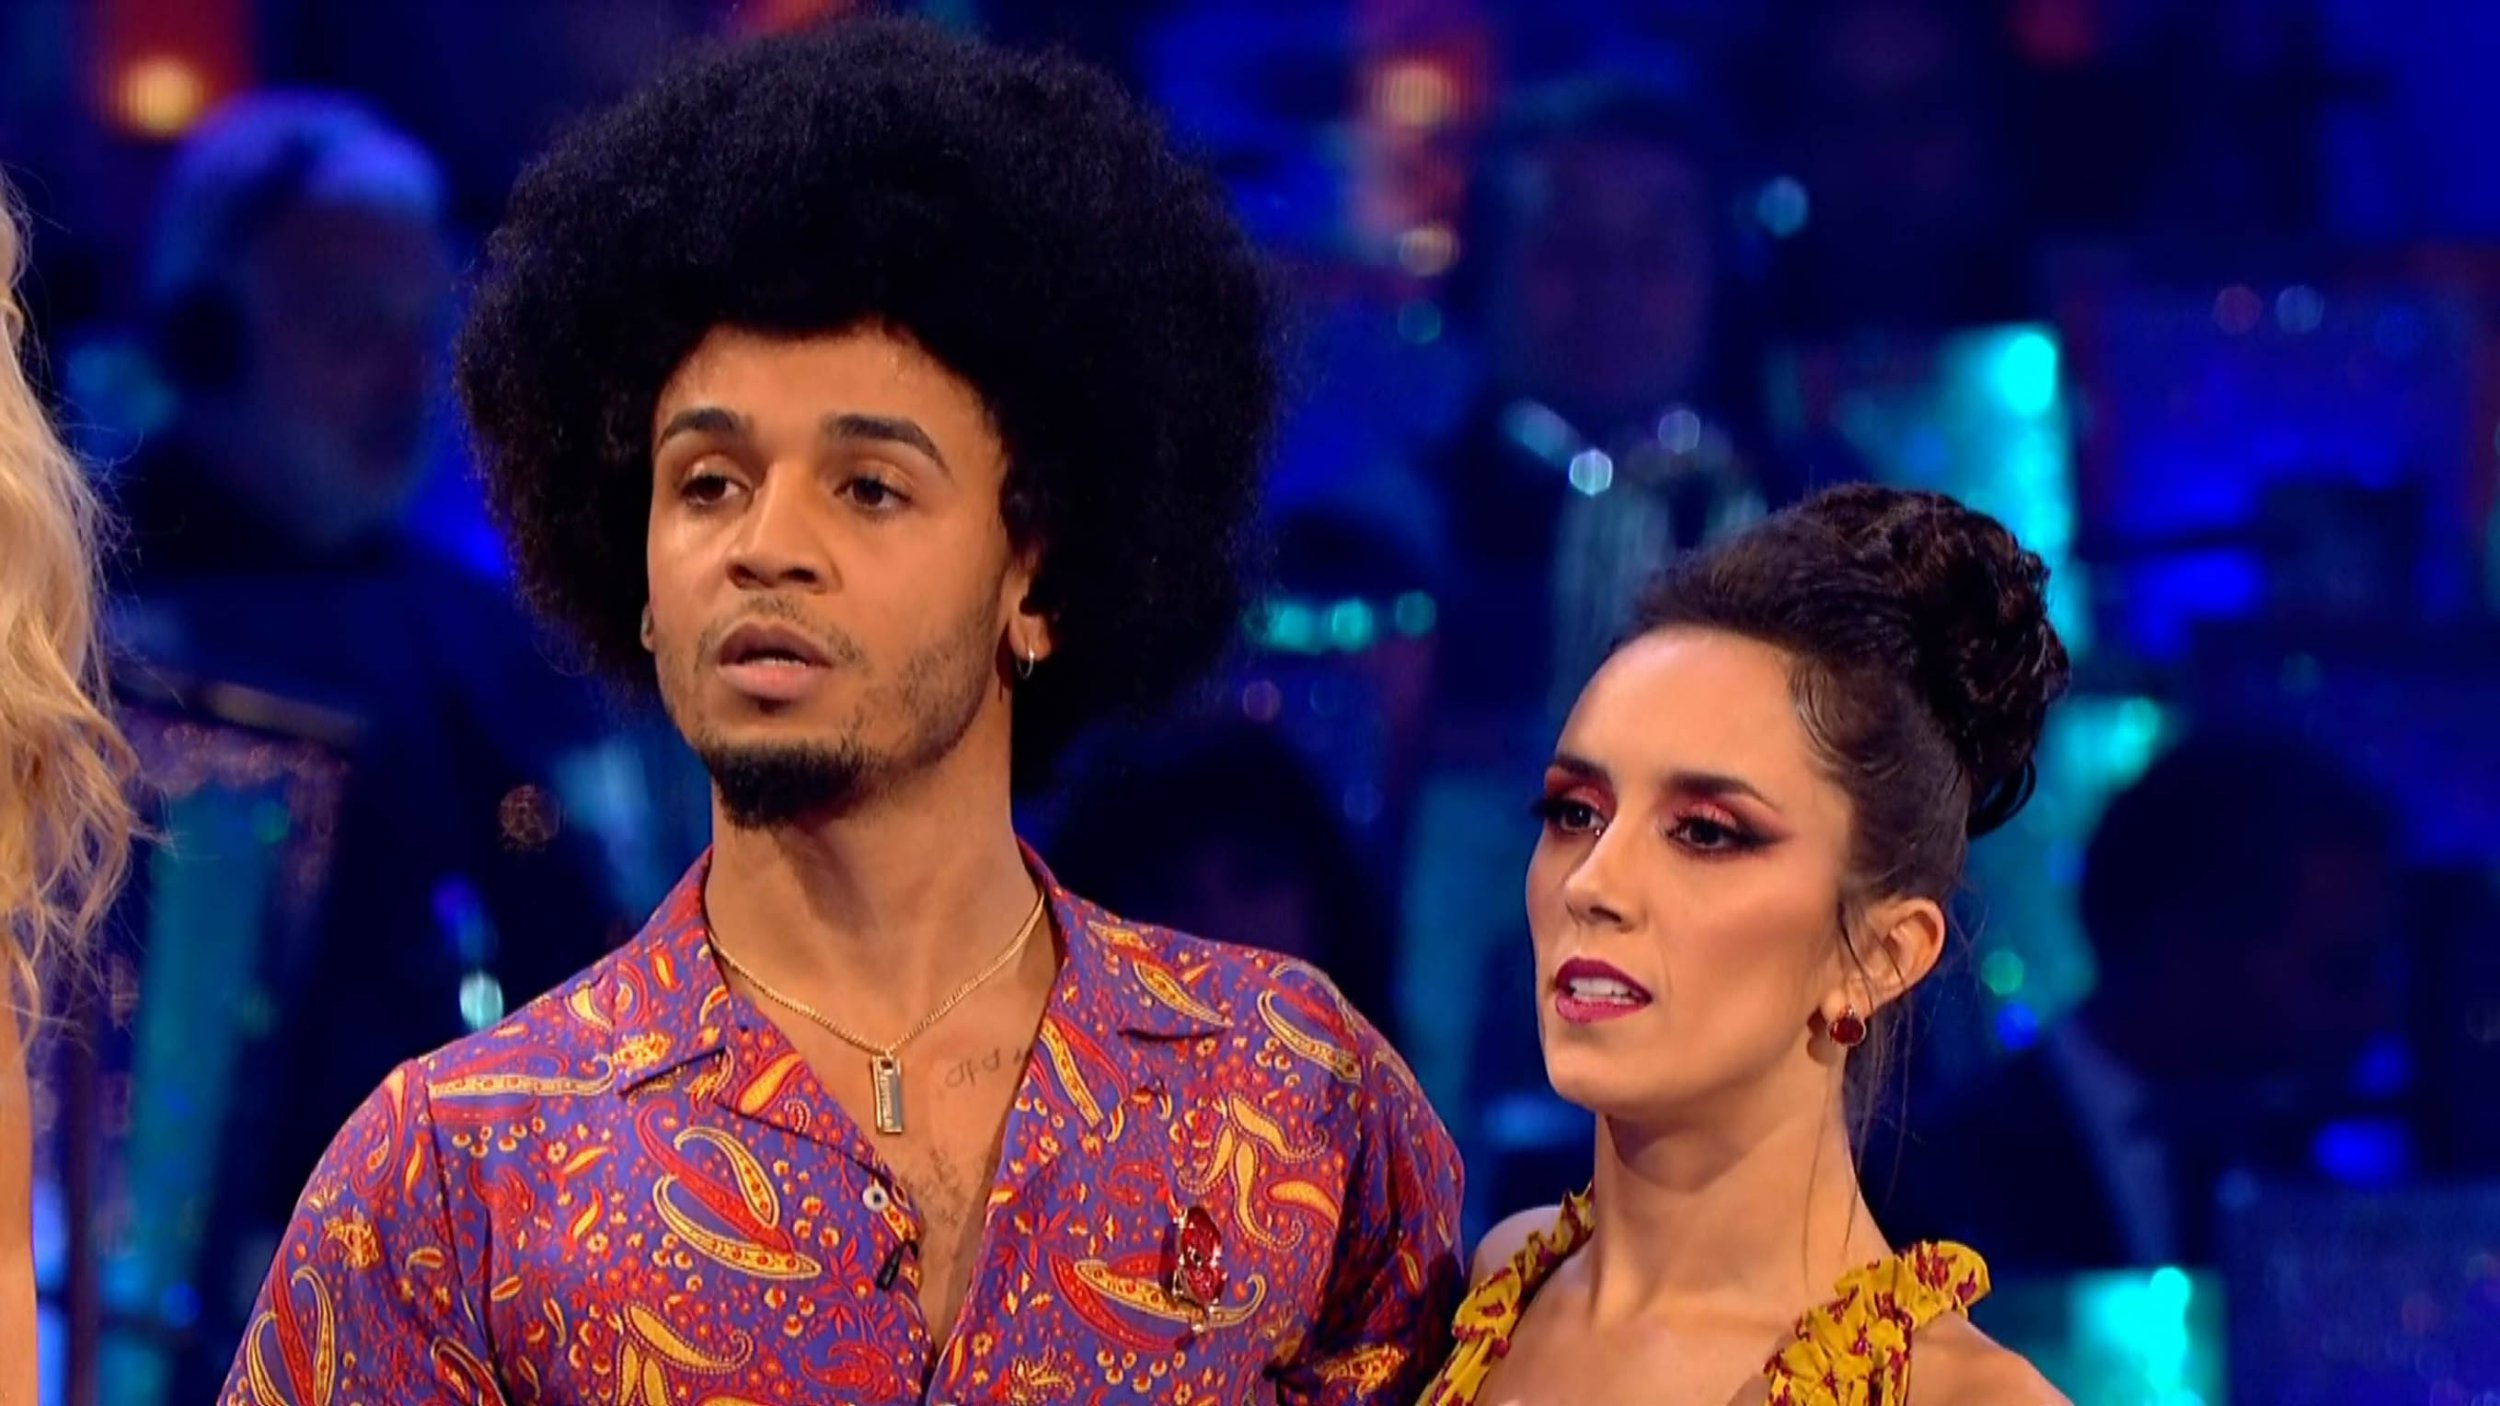 Former Strictly pro Karen Hardy defends judges after Aston Merrygold's shock exit and hails Debbie McGee 'pure dance gold'